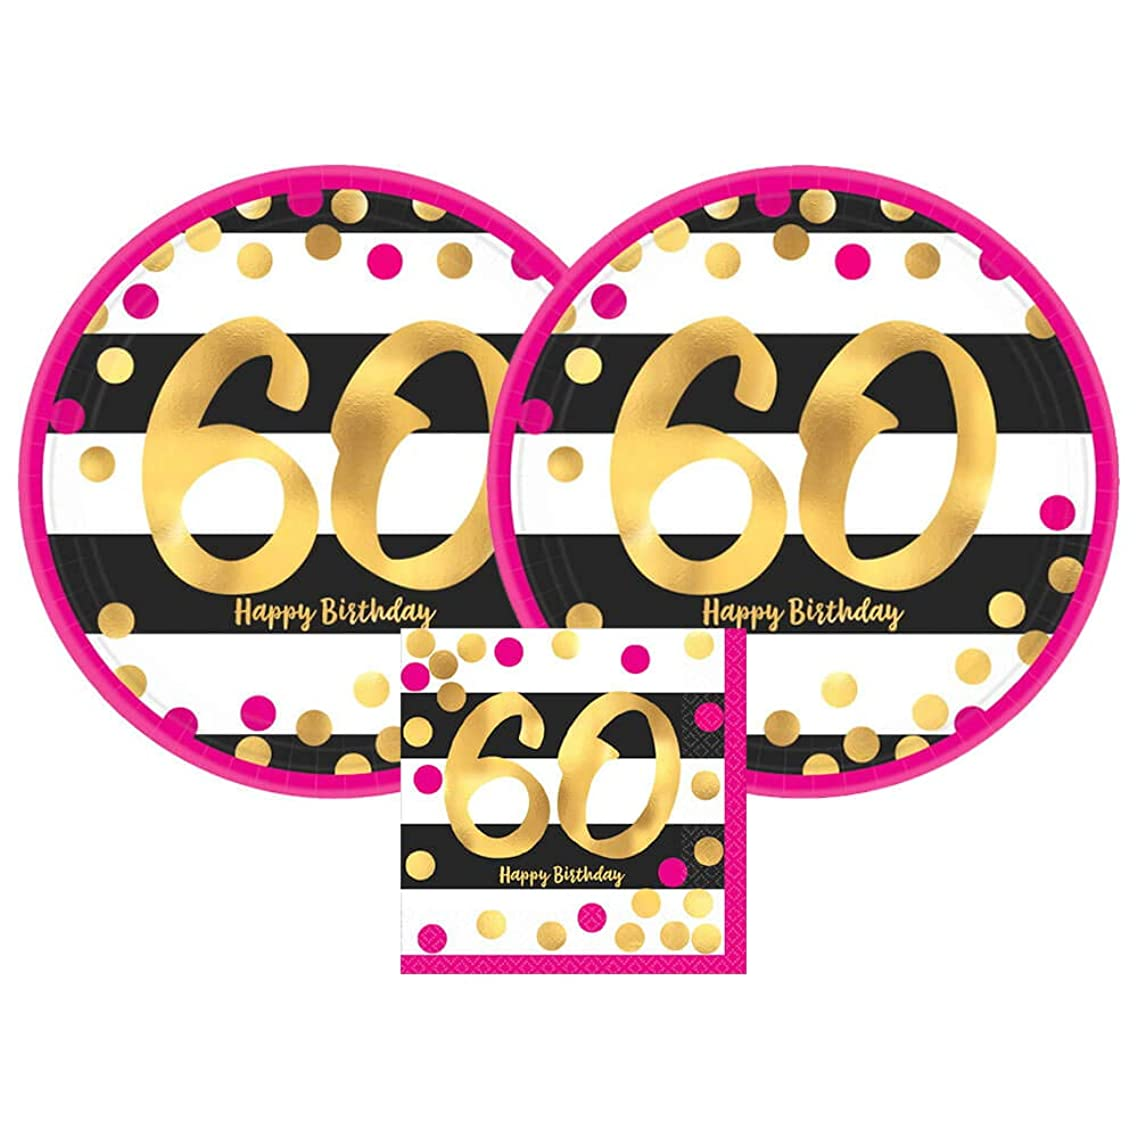 Amscan Pink & Gold 60th Birthday Party Paper Plates and Paper Napkins, 16 Servings, Bundle- 3 Items